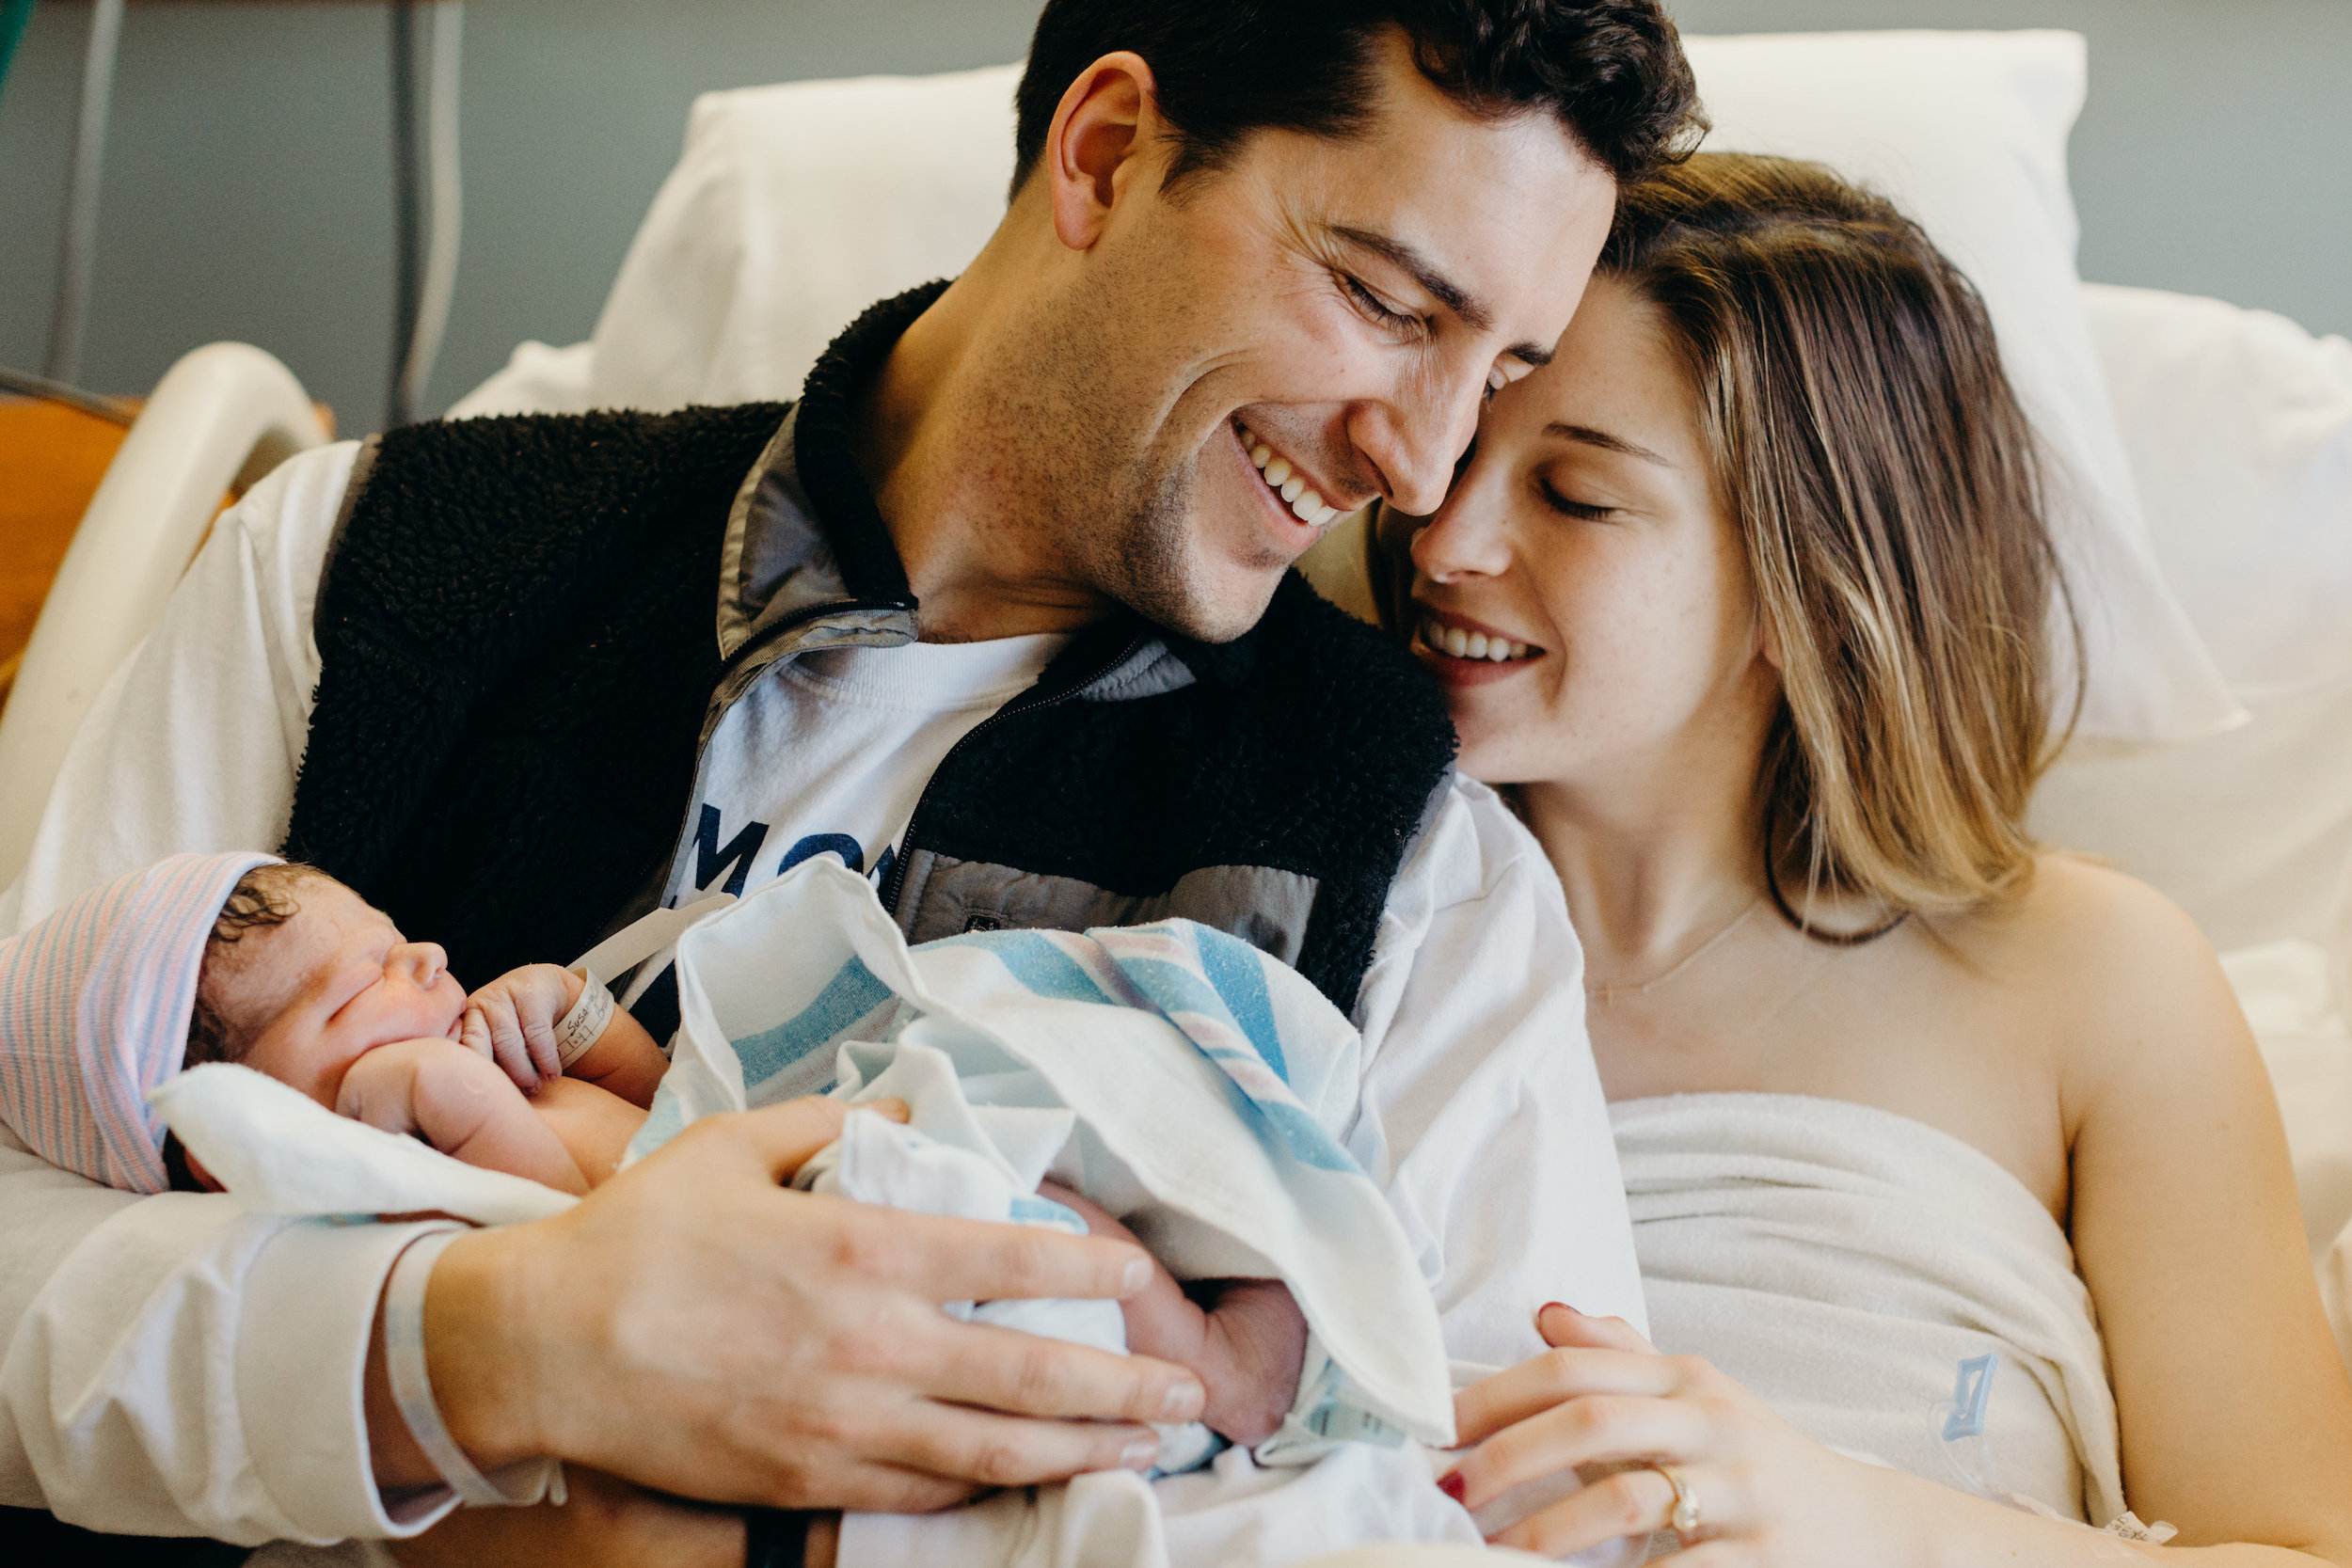 Birth Story // Wylden Lily Collins // Suzy Collins Photography personal, birth story, newborn, maternity, delivery, inspiration, real life, lifestyle, hospital, vibrant, natural light